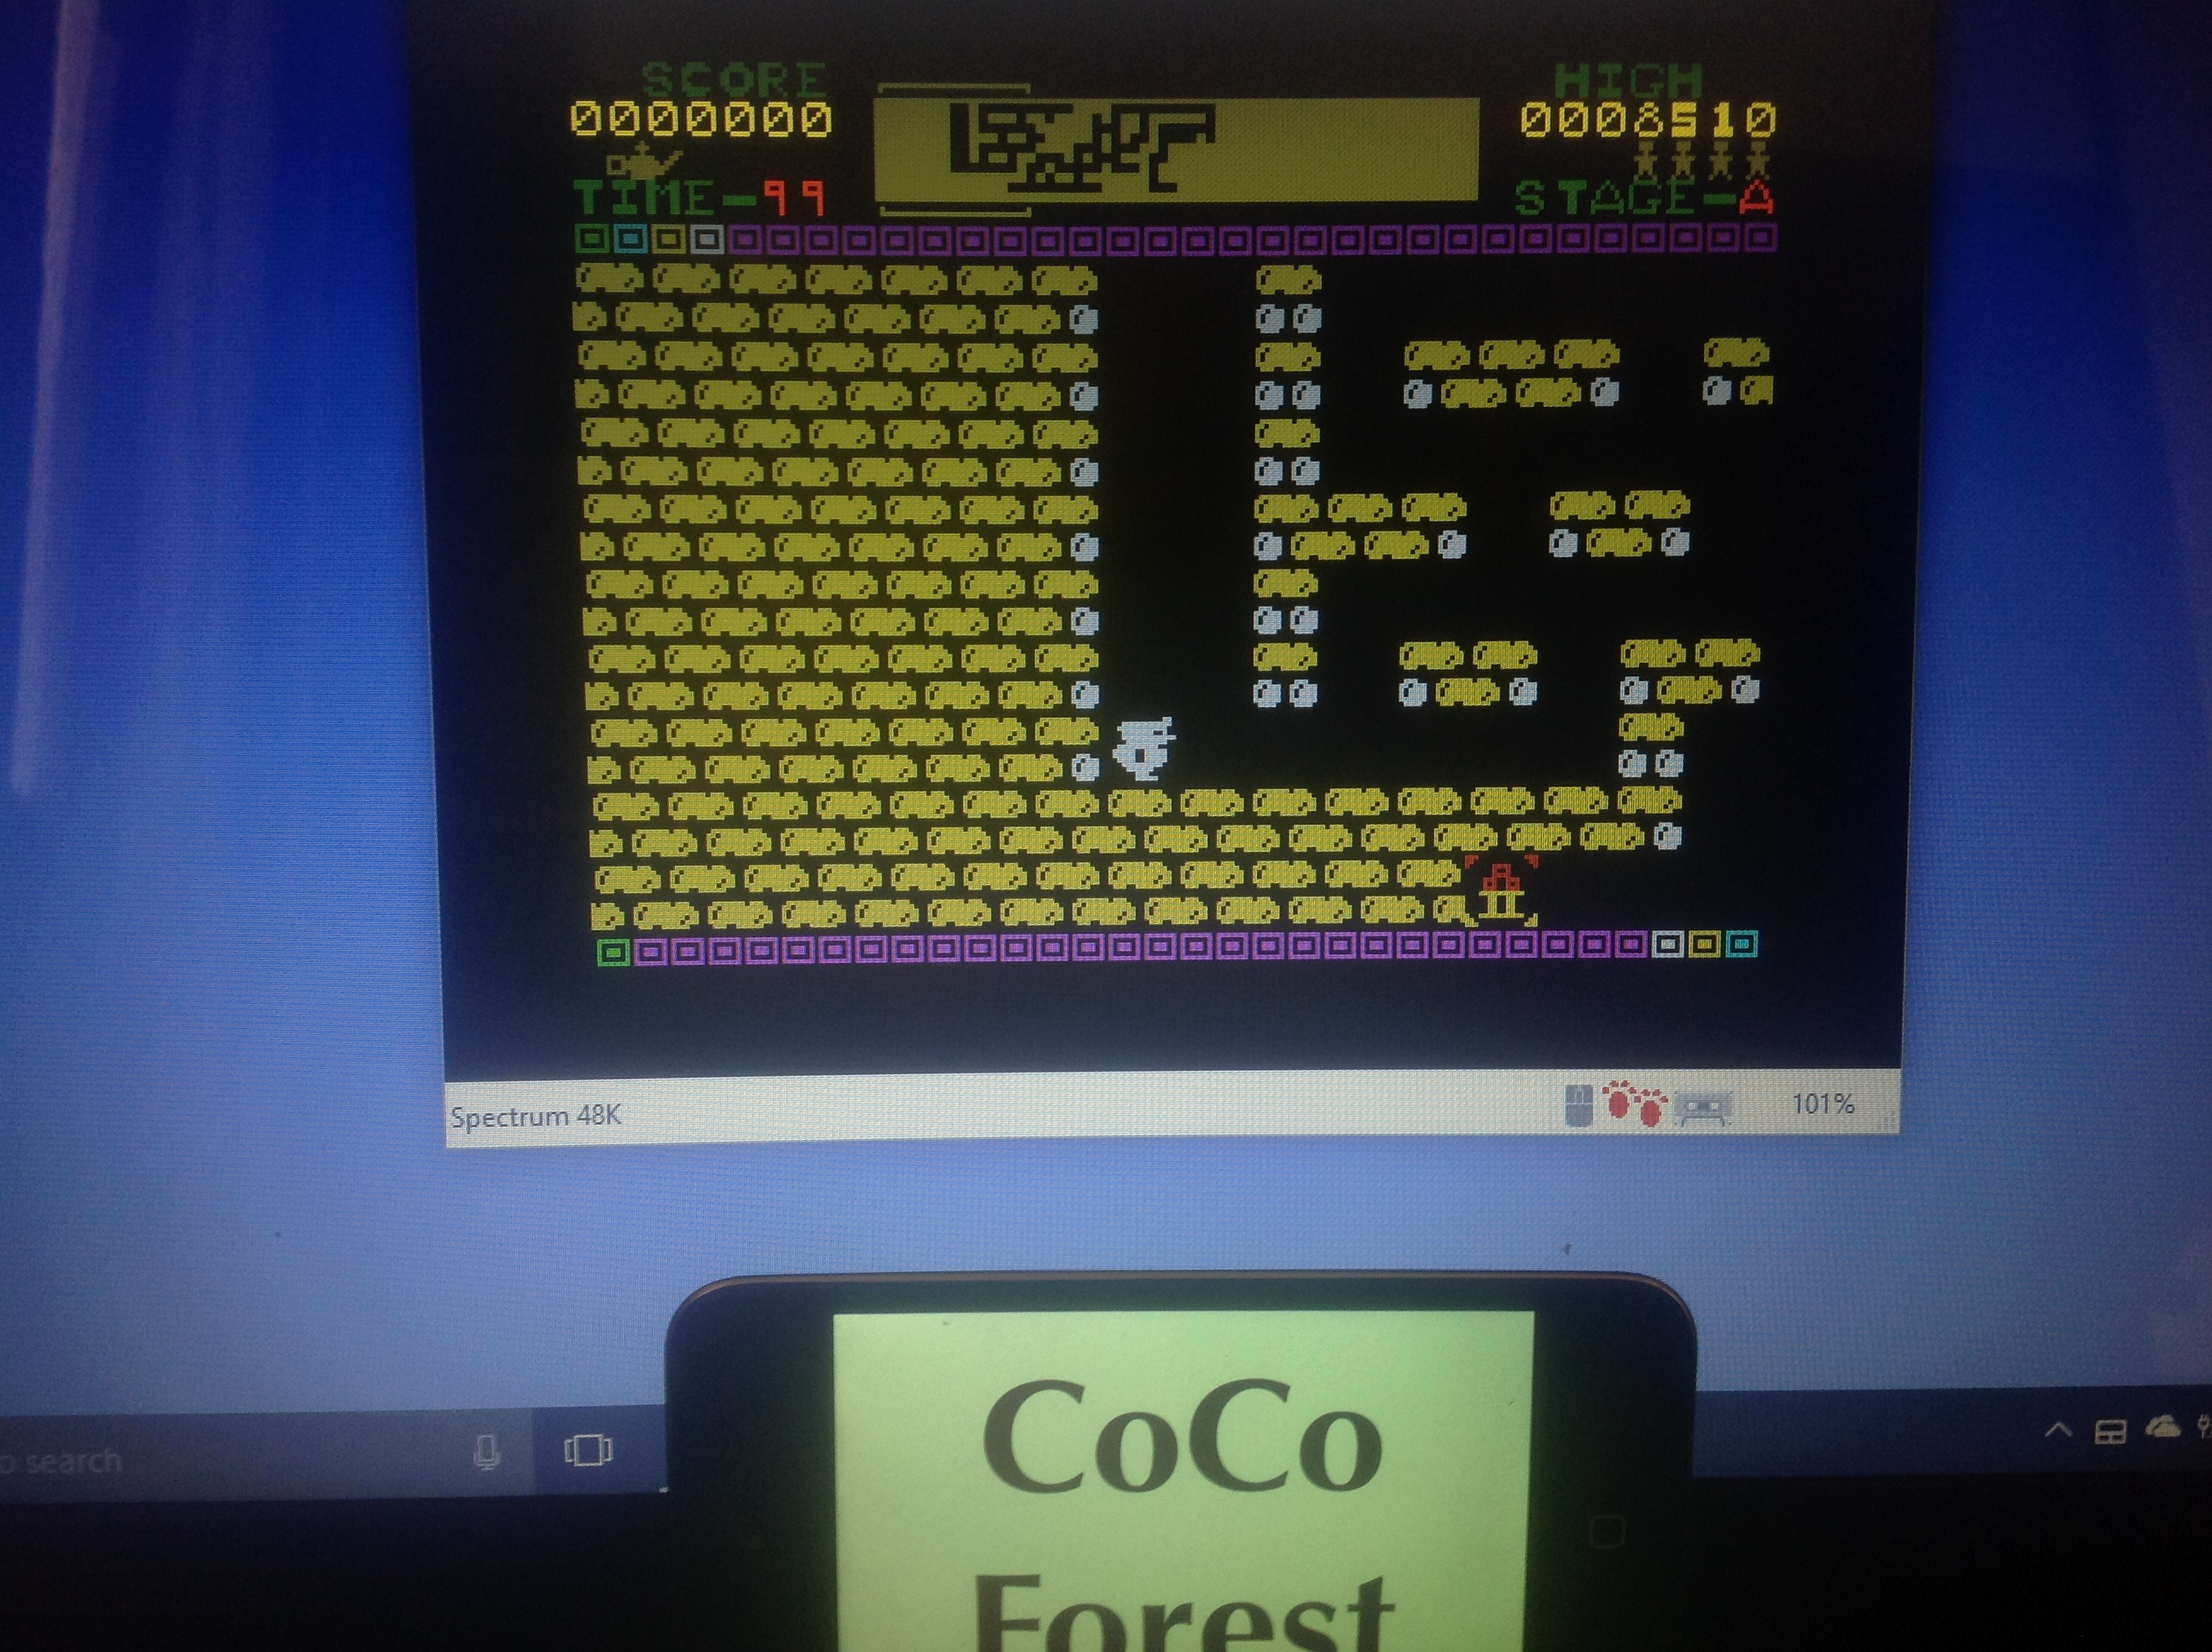 CoCoForest: Quackshot (ZX Spectrum Emulated) 8,510 points on 2018-01-18 05:48:01